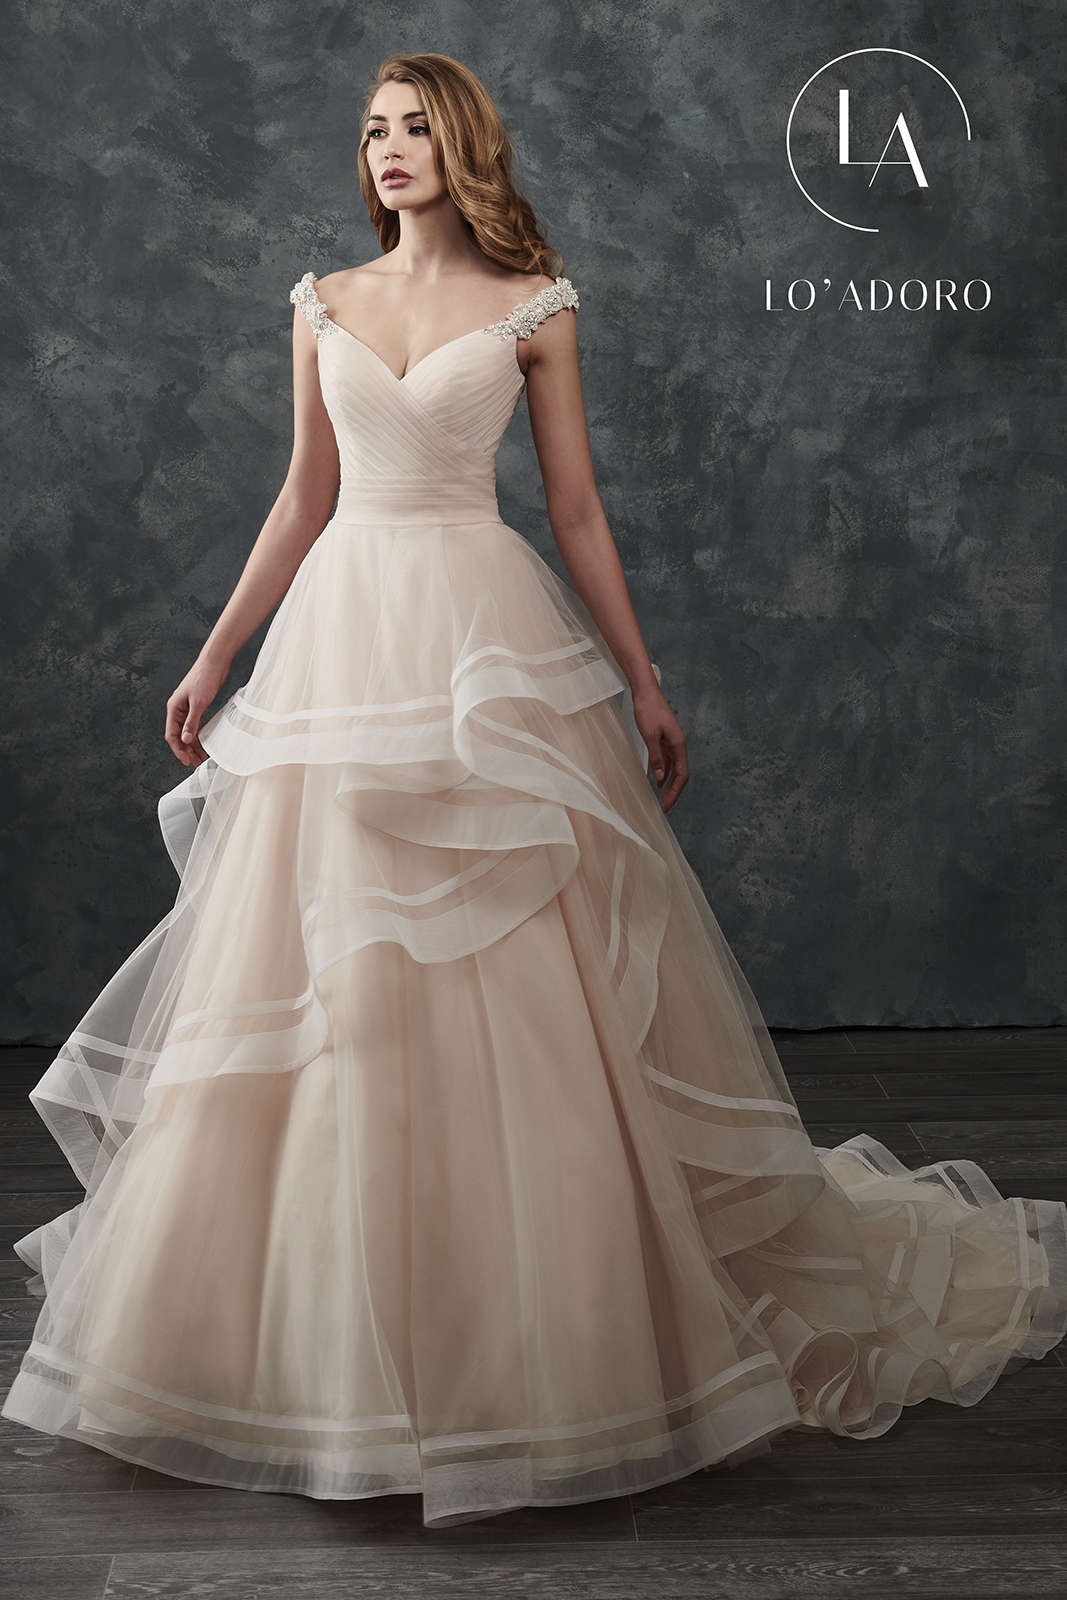 Off The Shoulder Ball Gowns Lo' Adoro Bridal in Ivory Color